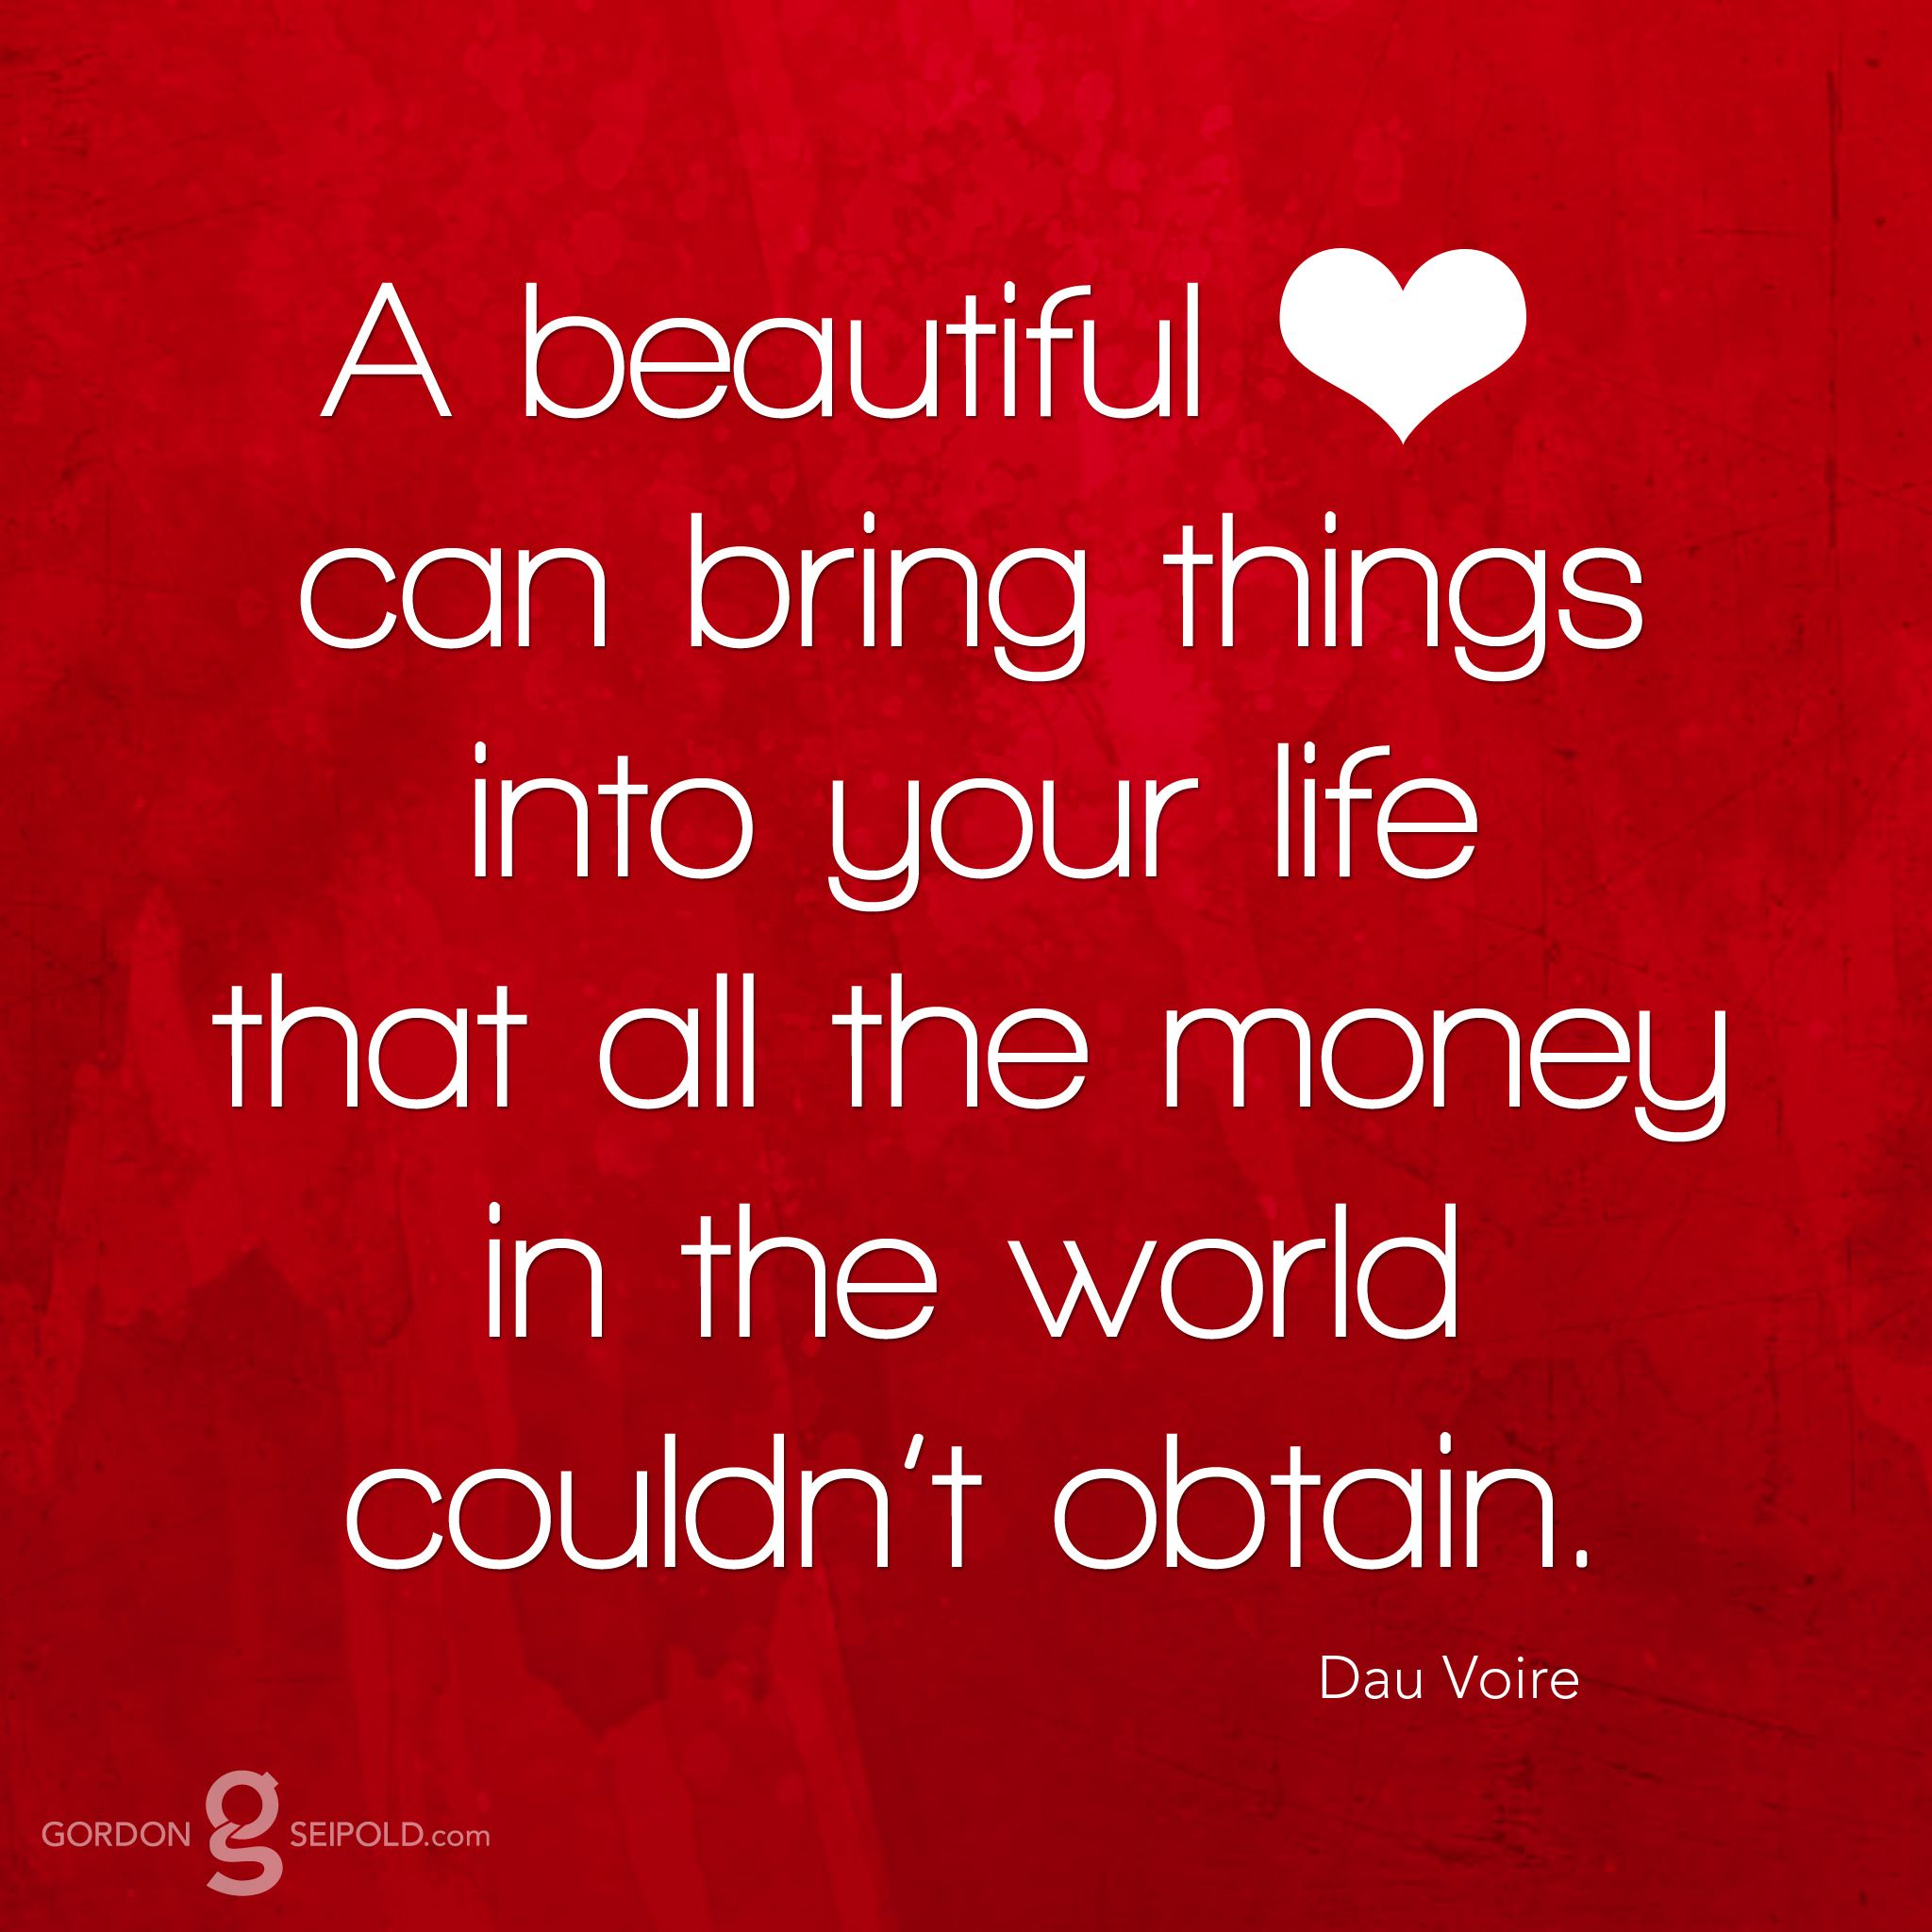 A beautiful heart can bring things into your life that